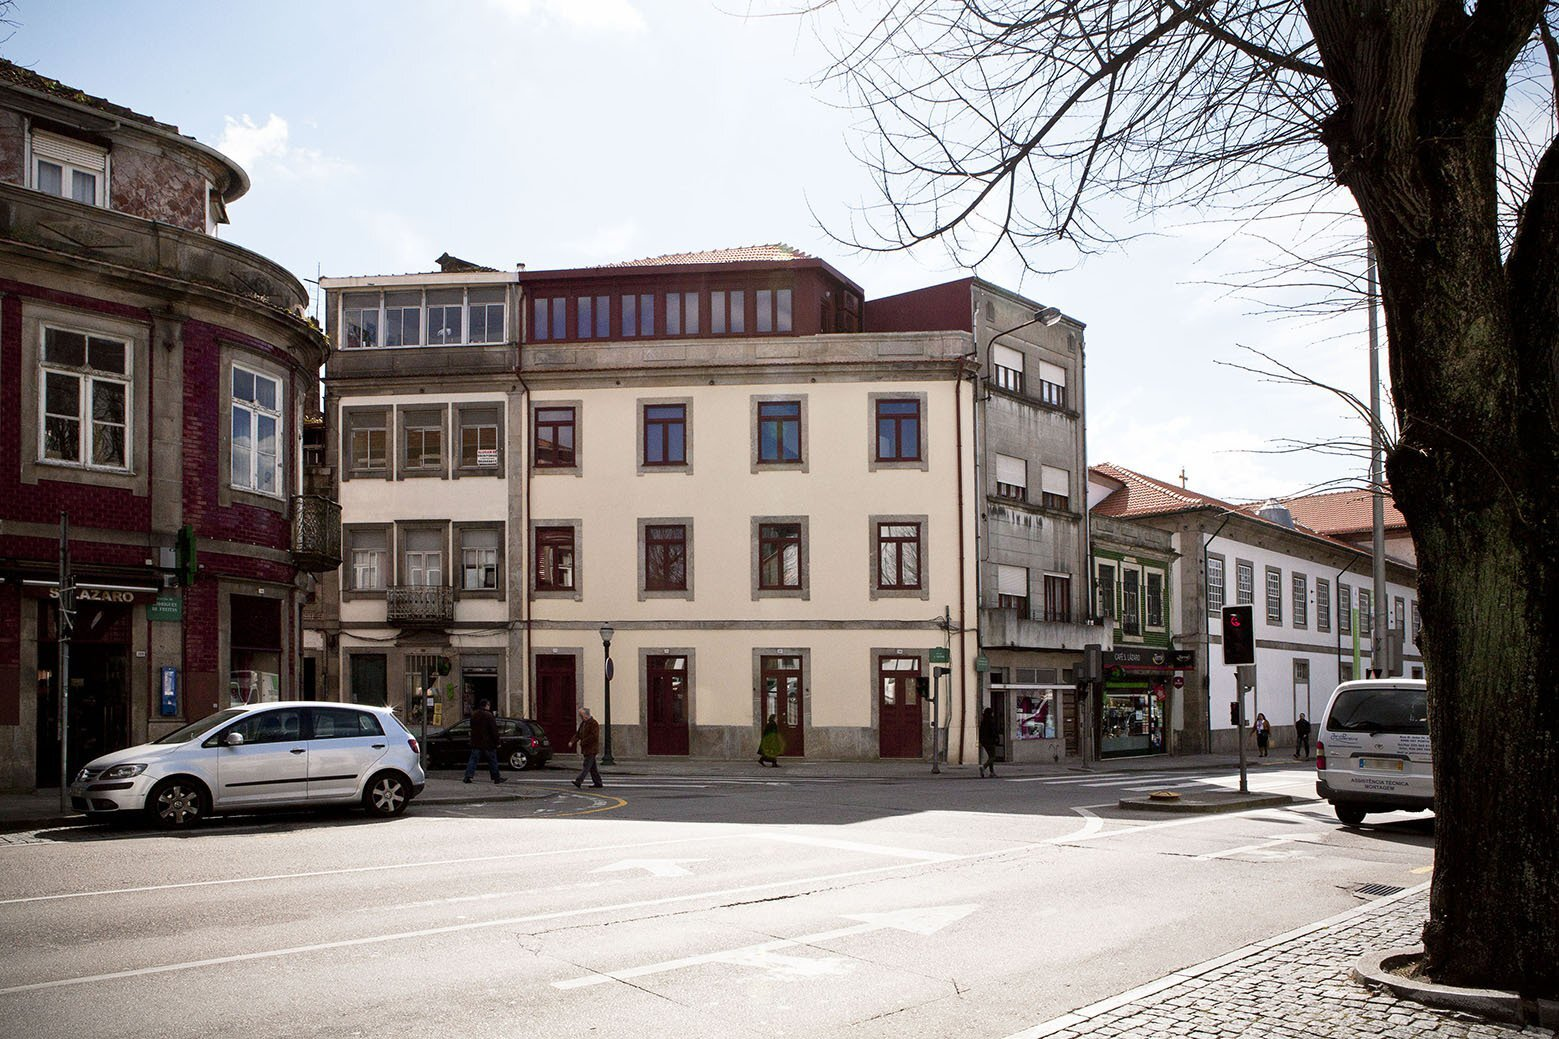 S. Victor Lofts - A2OFFICE - Portugal - Exterior - Humble Homes